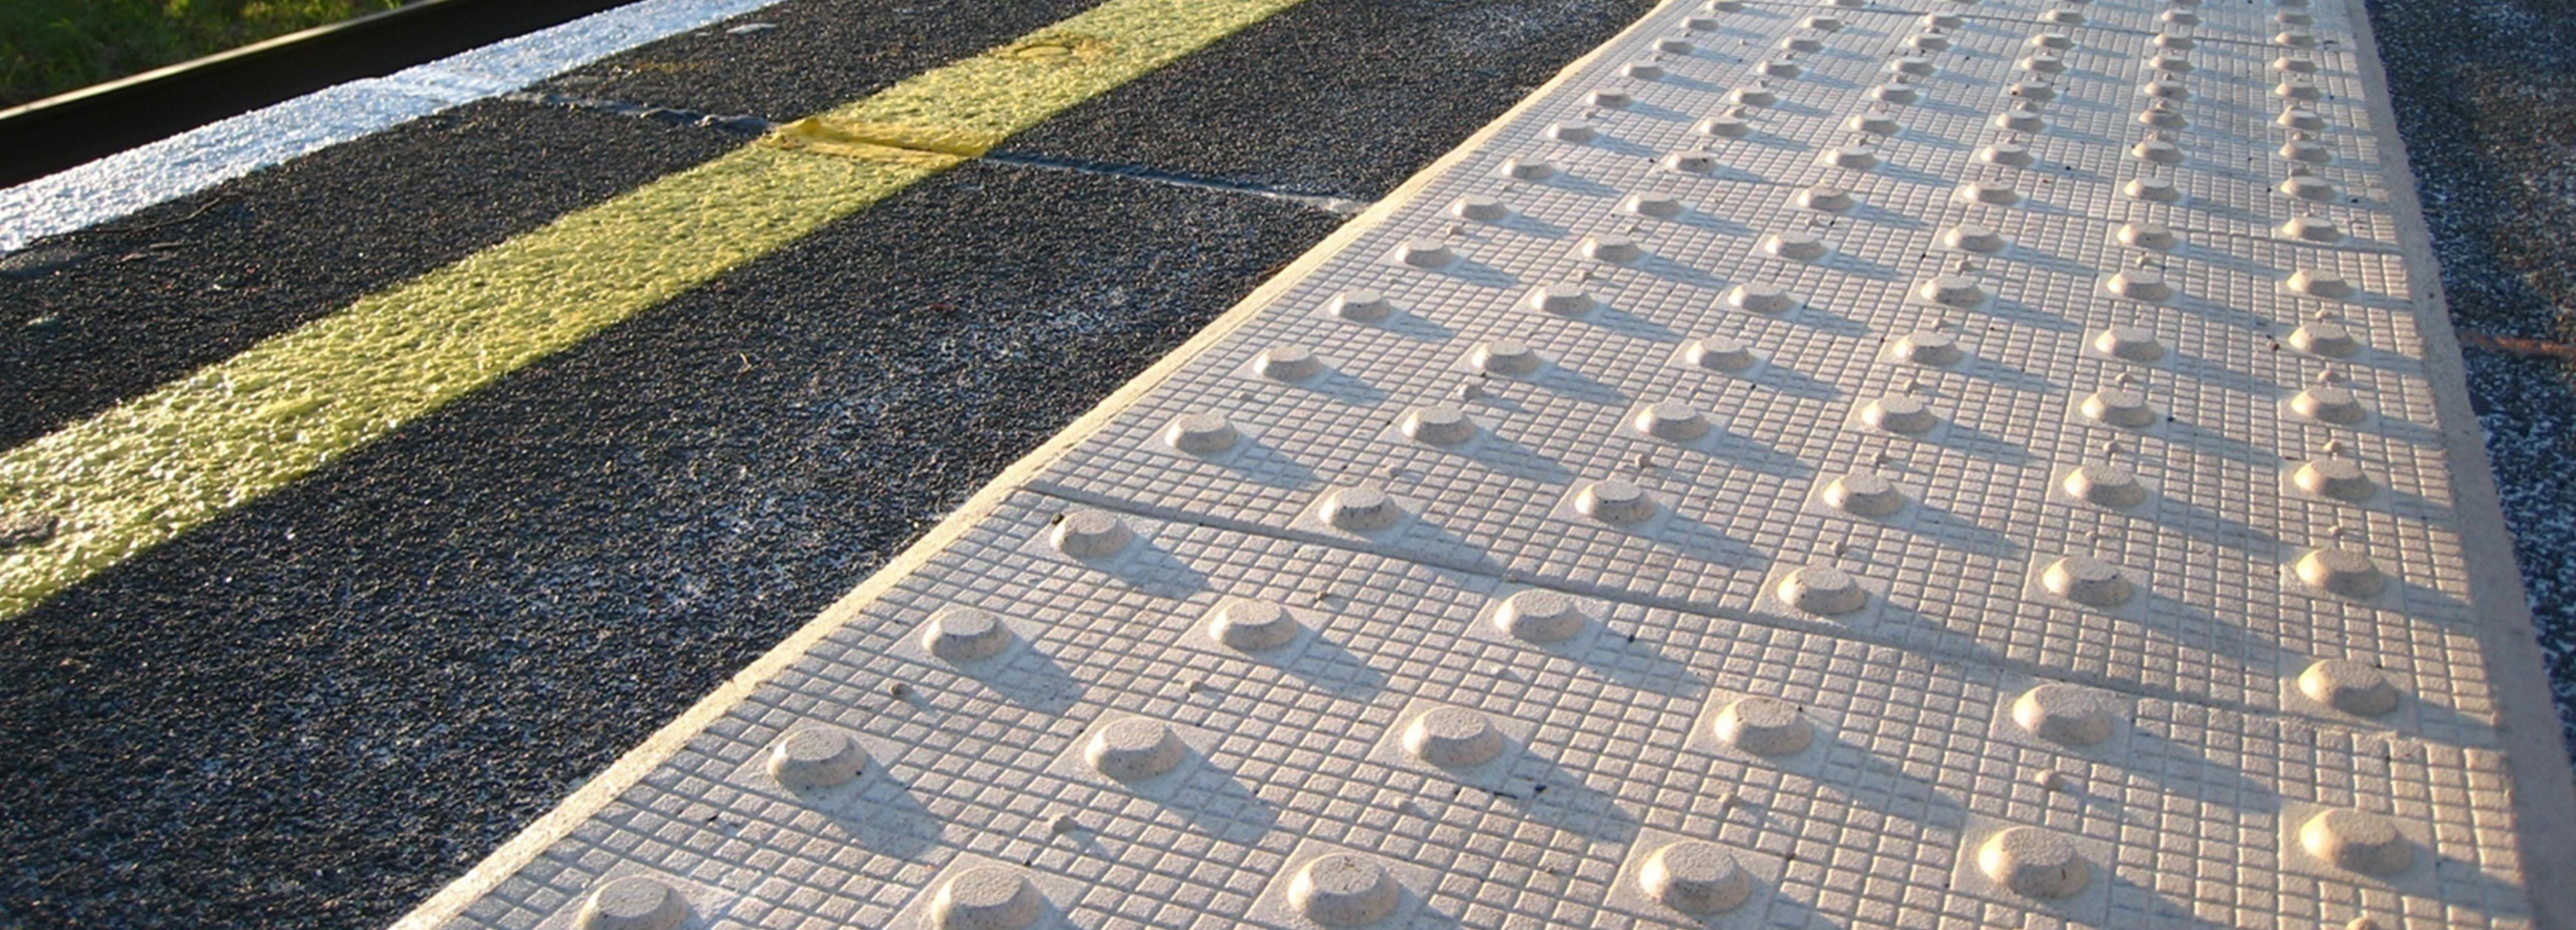 Tactile Paving Slabs For The Visually Impaired Visul